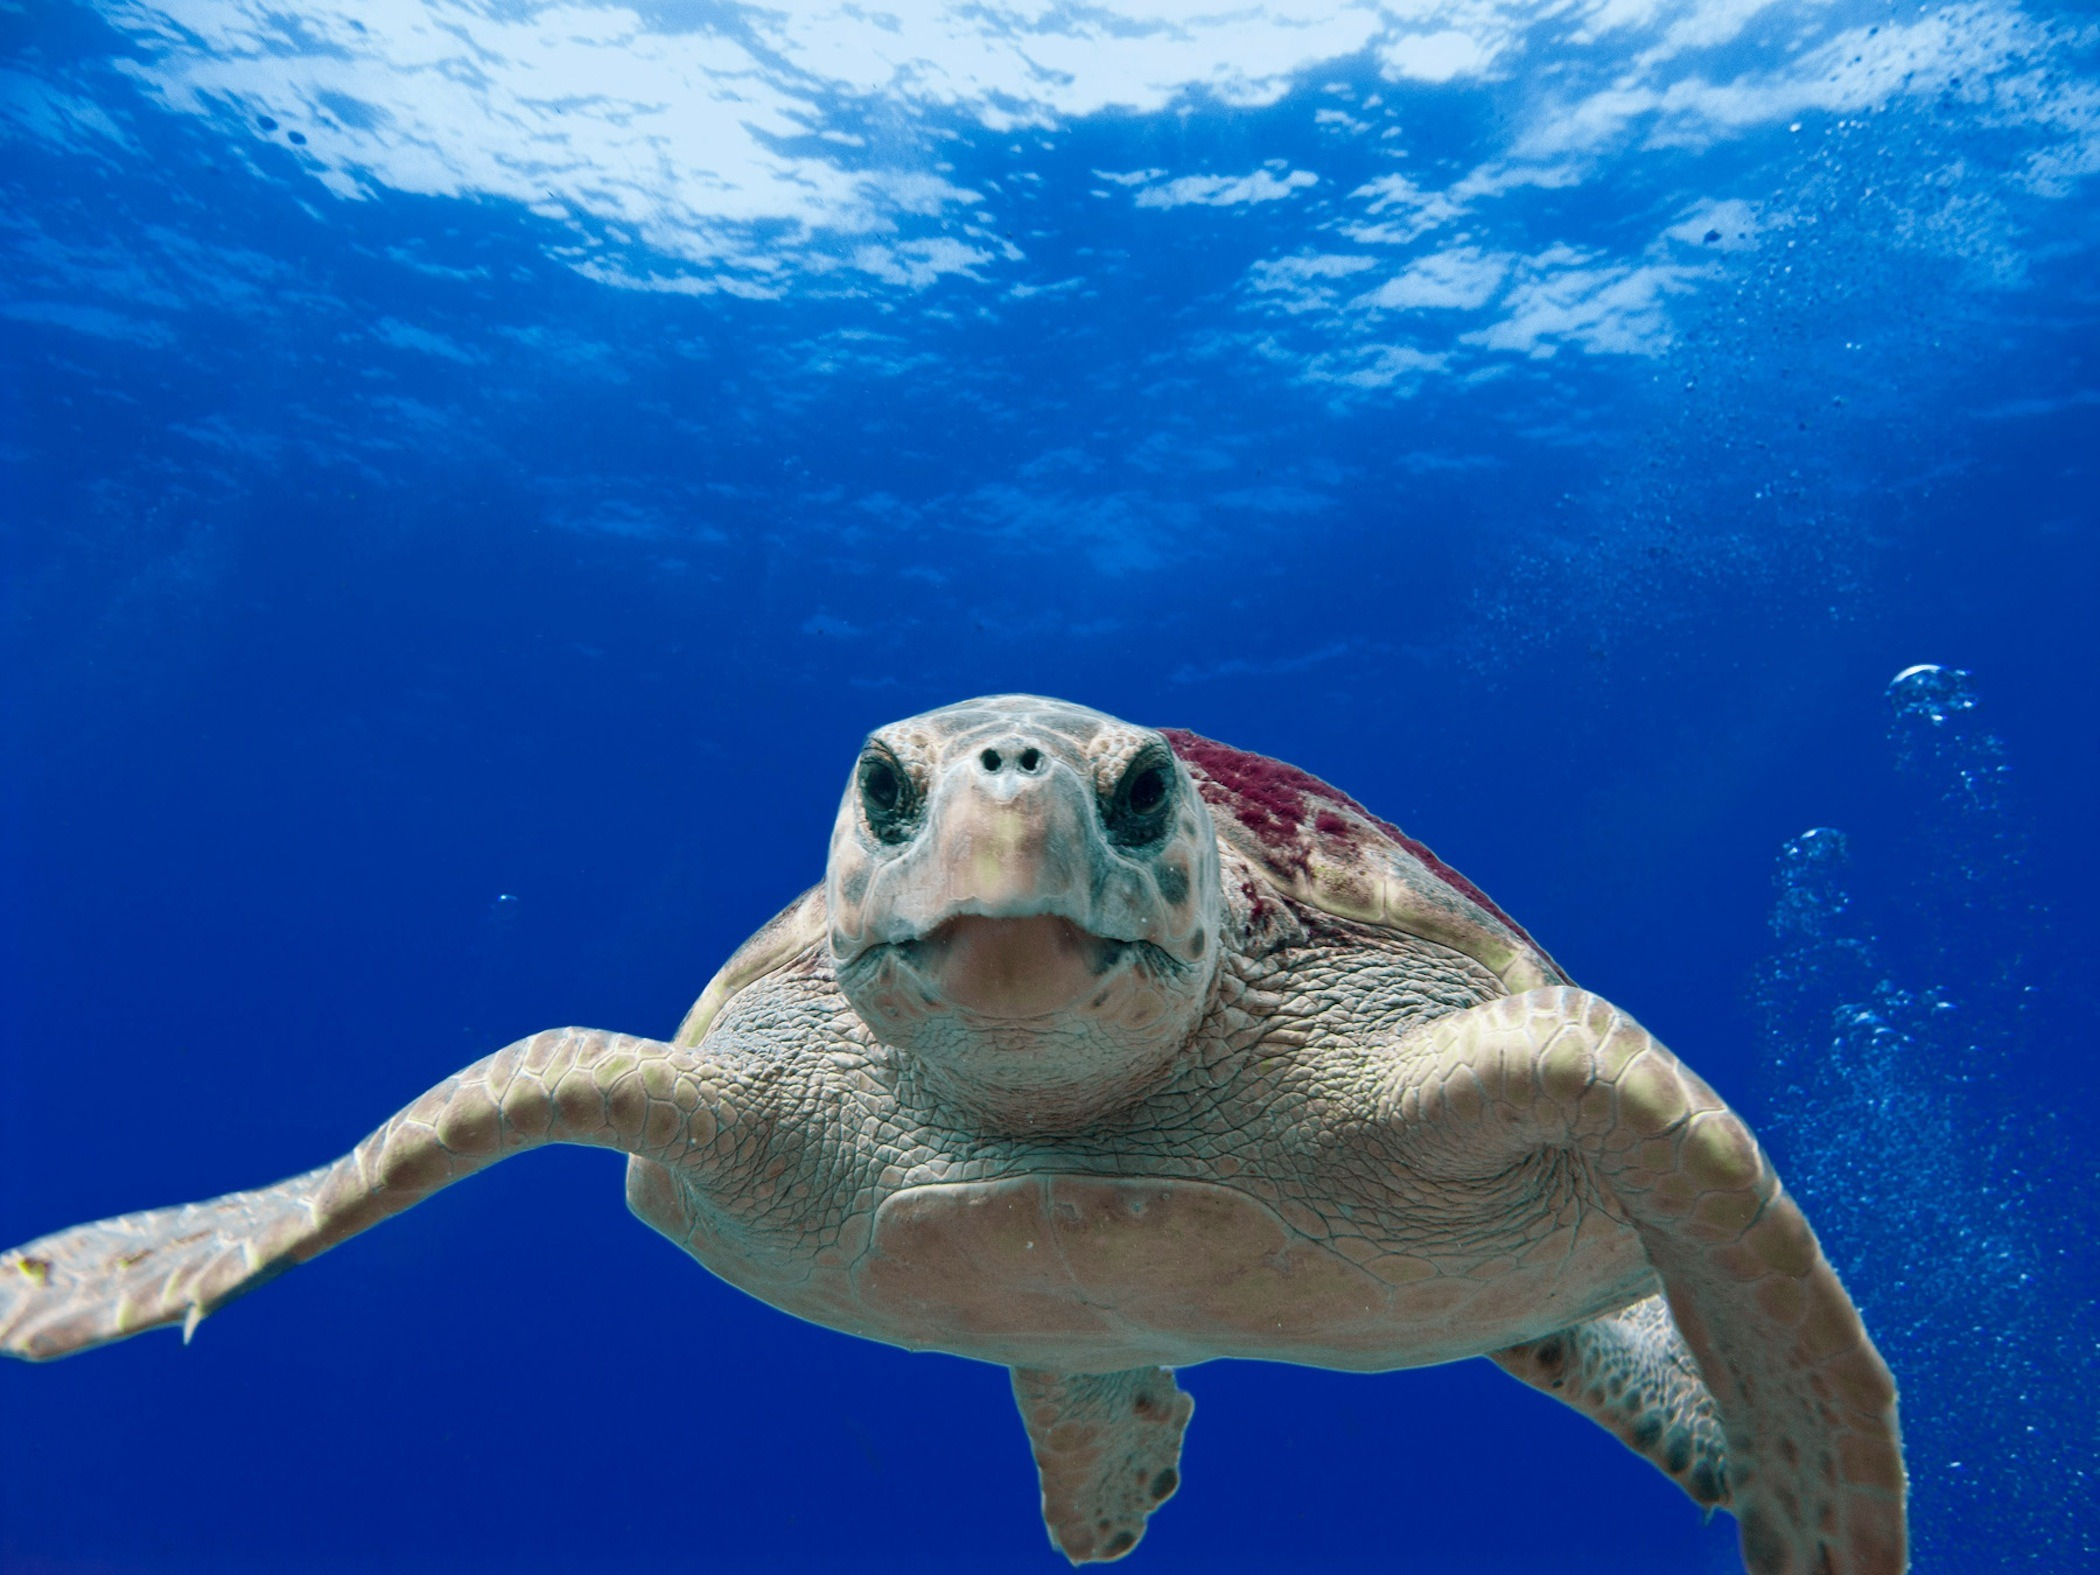 A turtle swimming in the sea